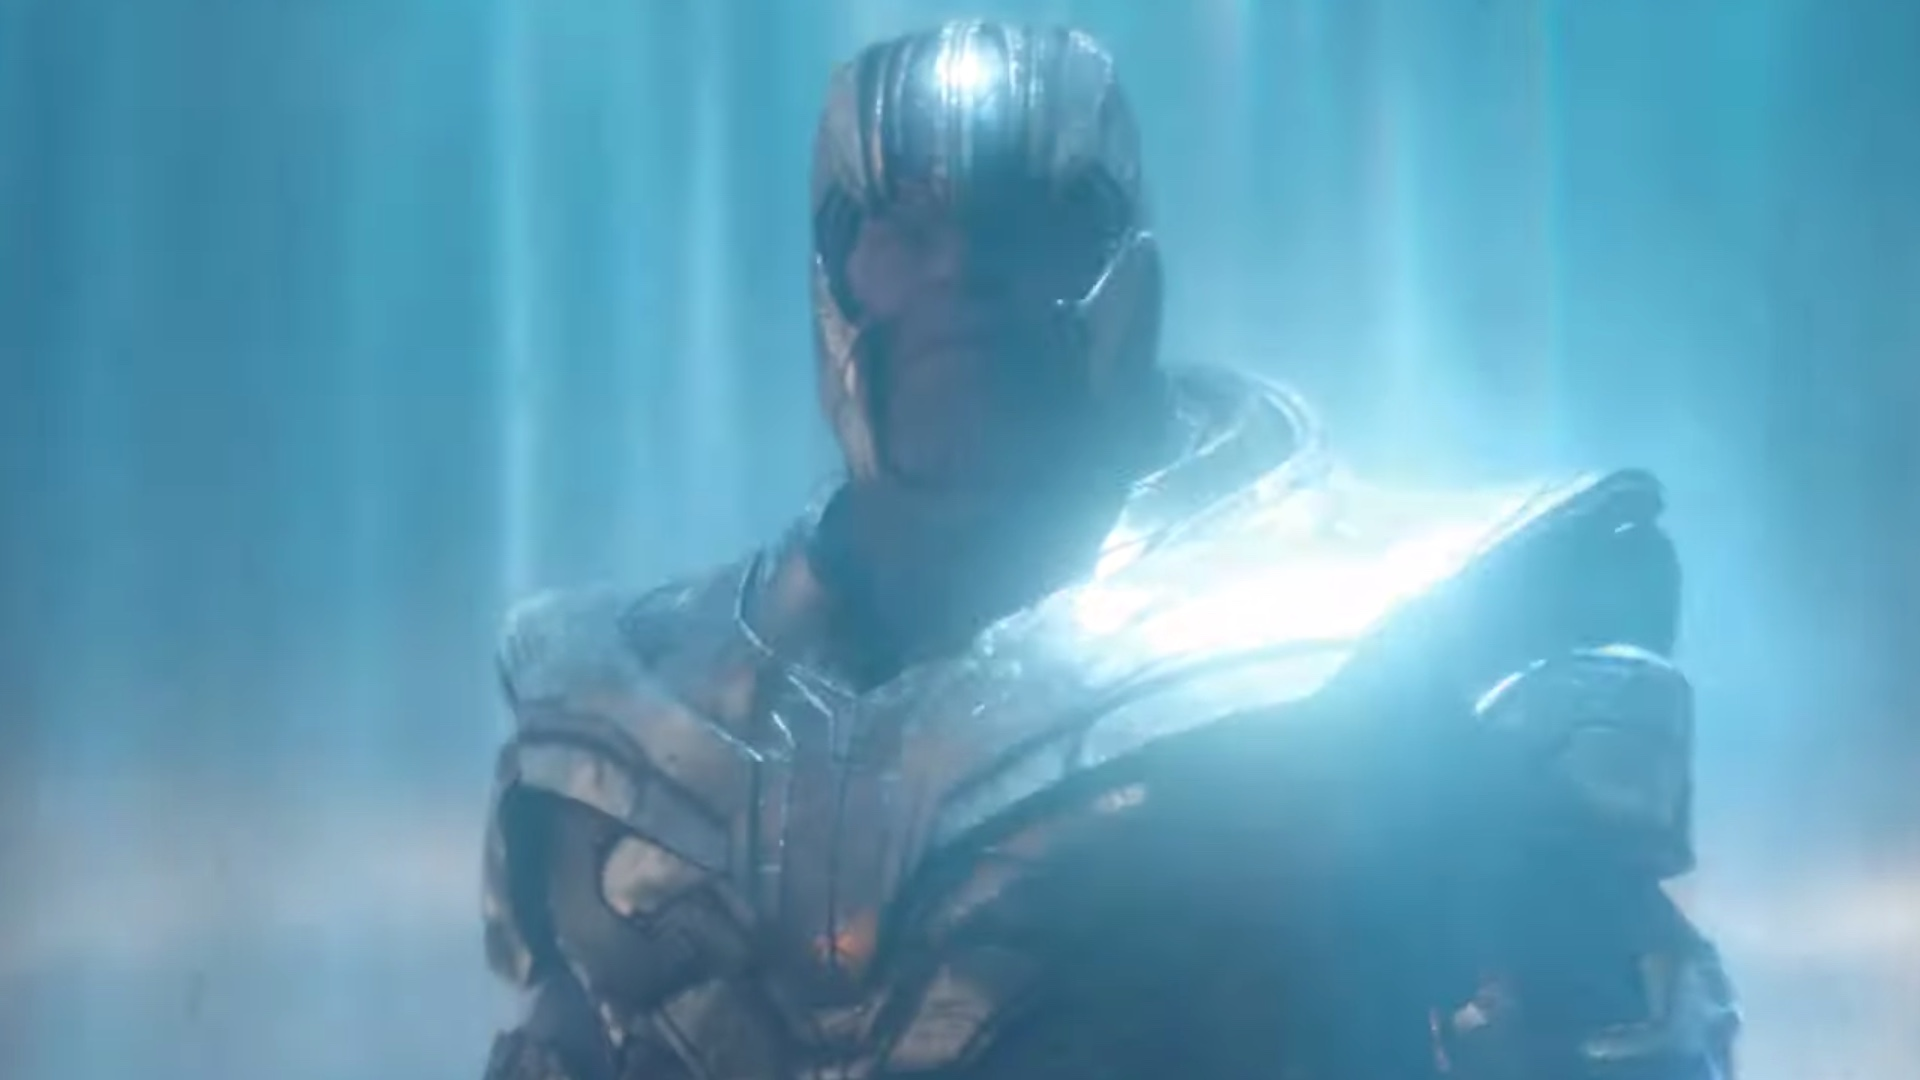 The Avengers Confront Thanos In New Avengers Endgame Trailer And